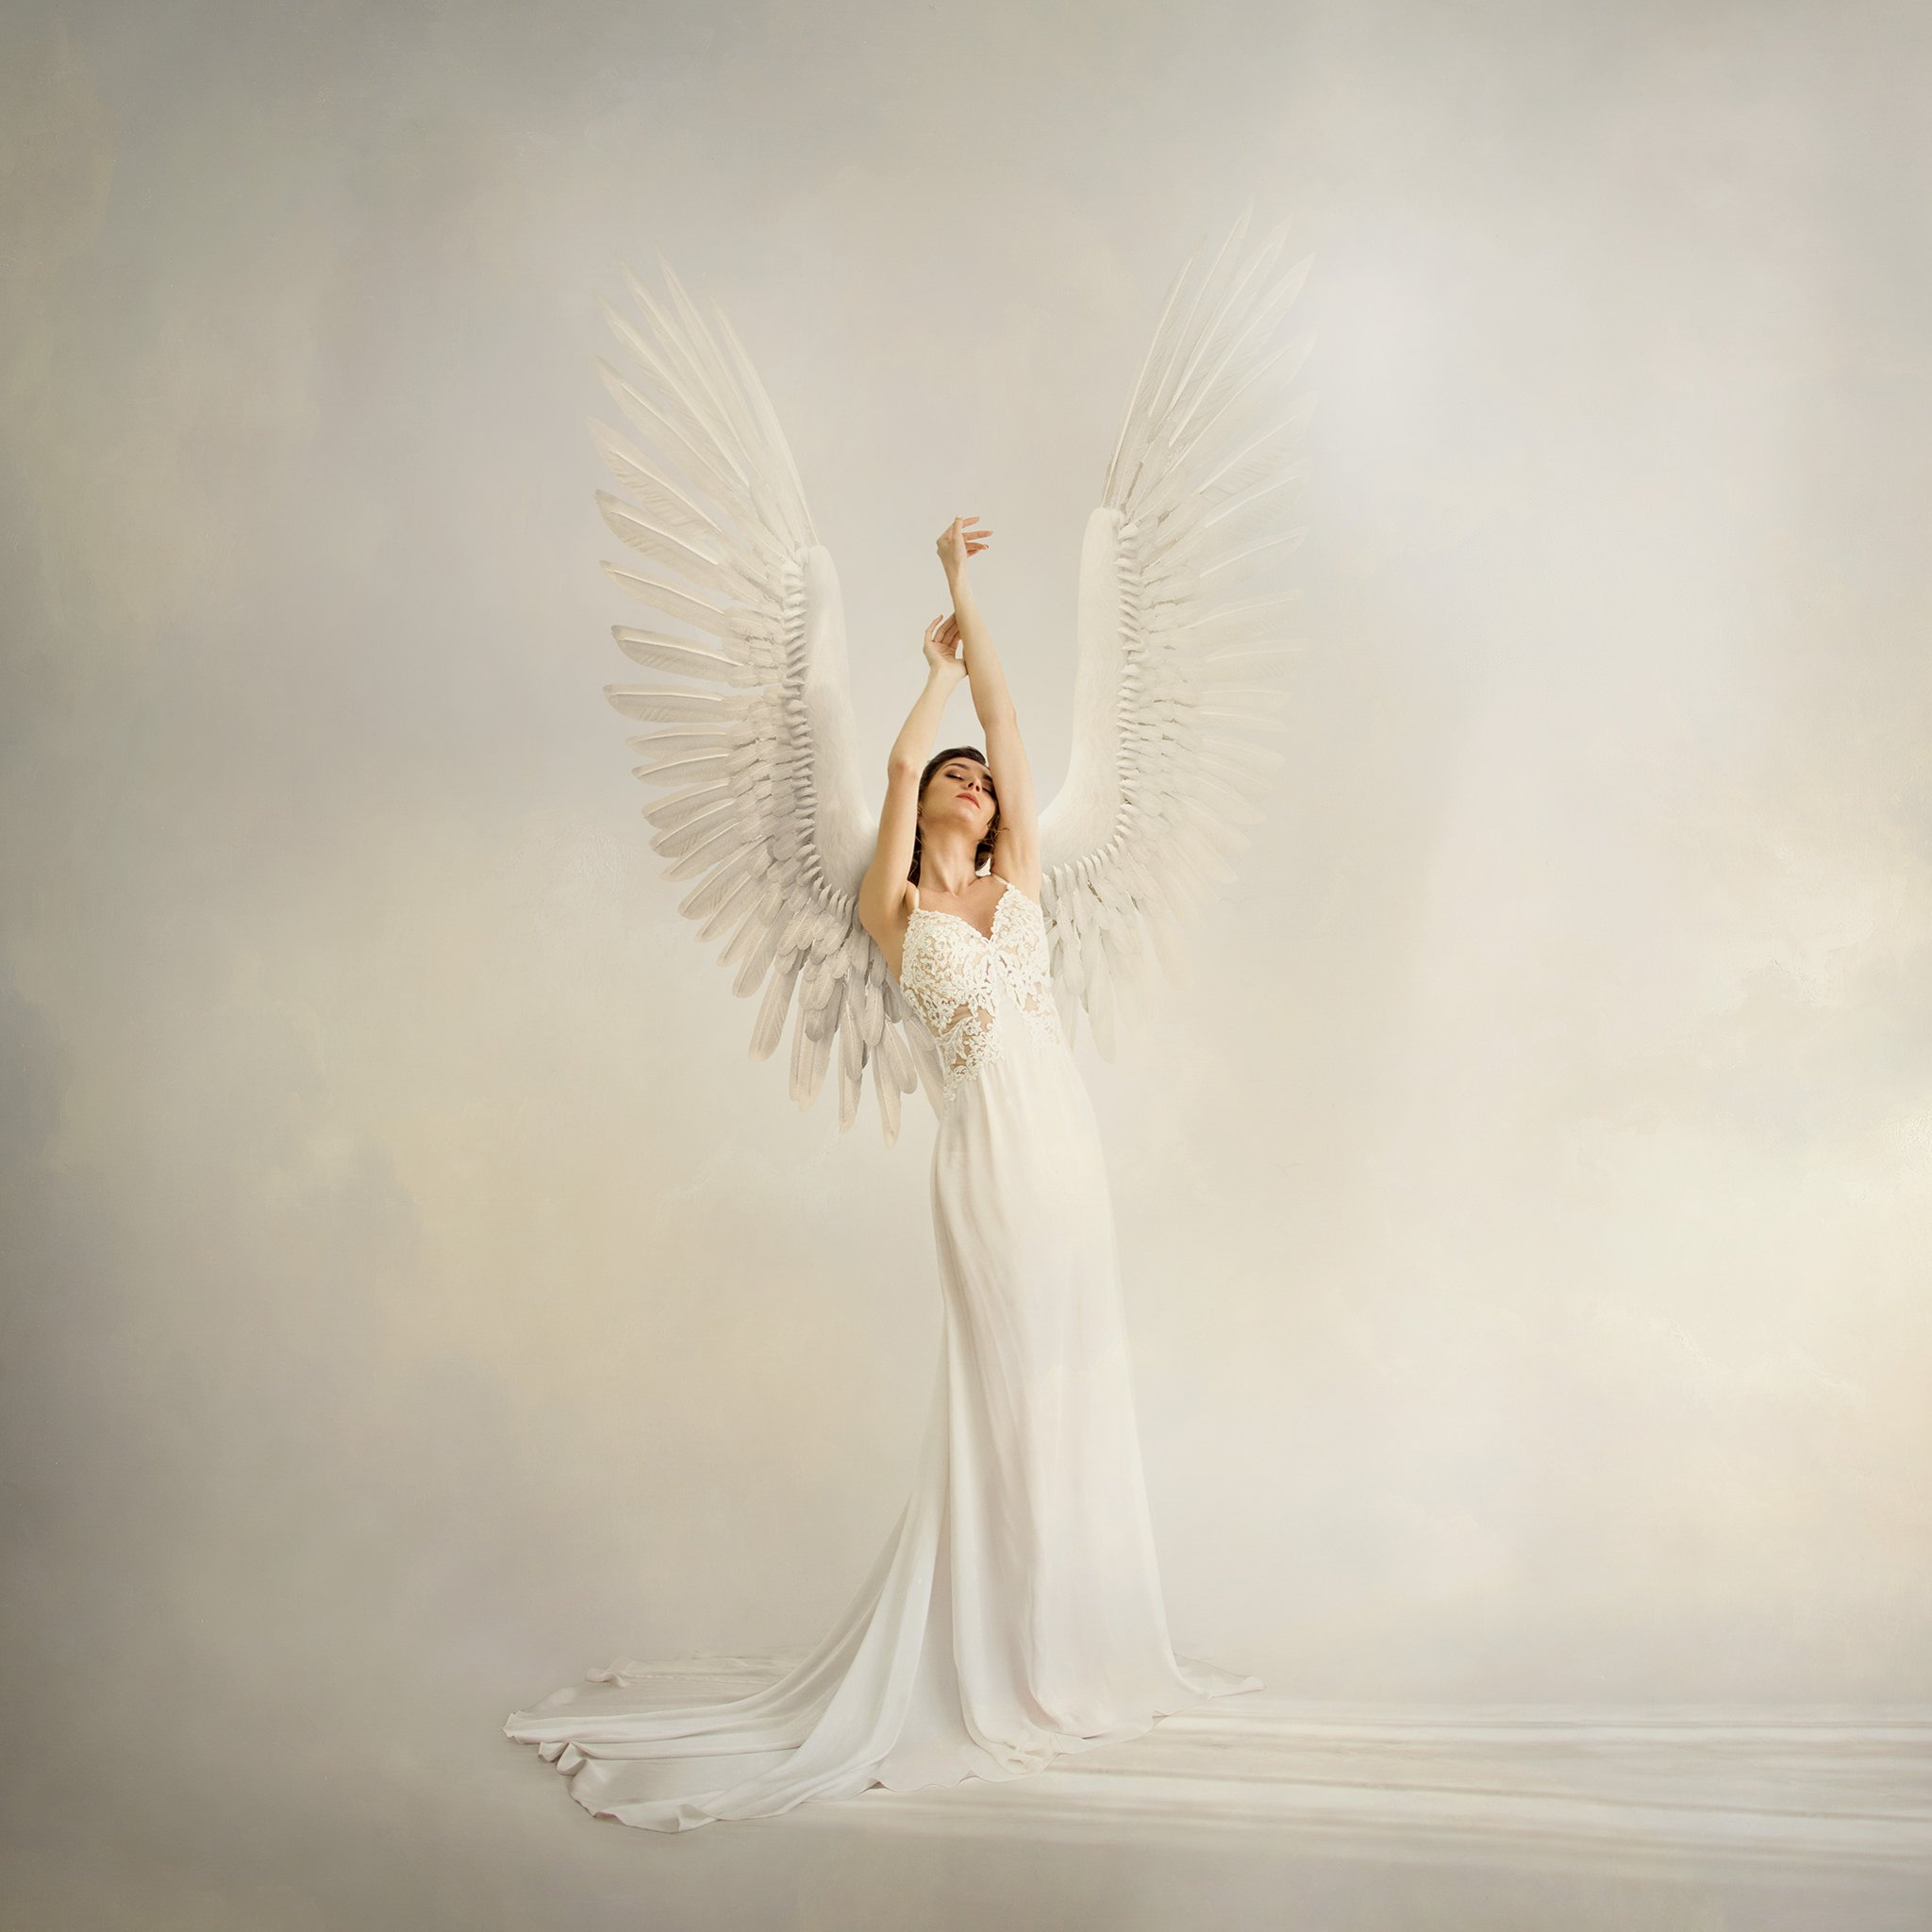 woman in white dress with angel wings in clouds